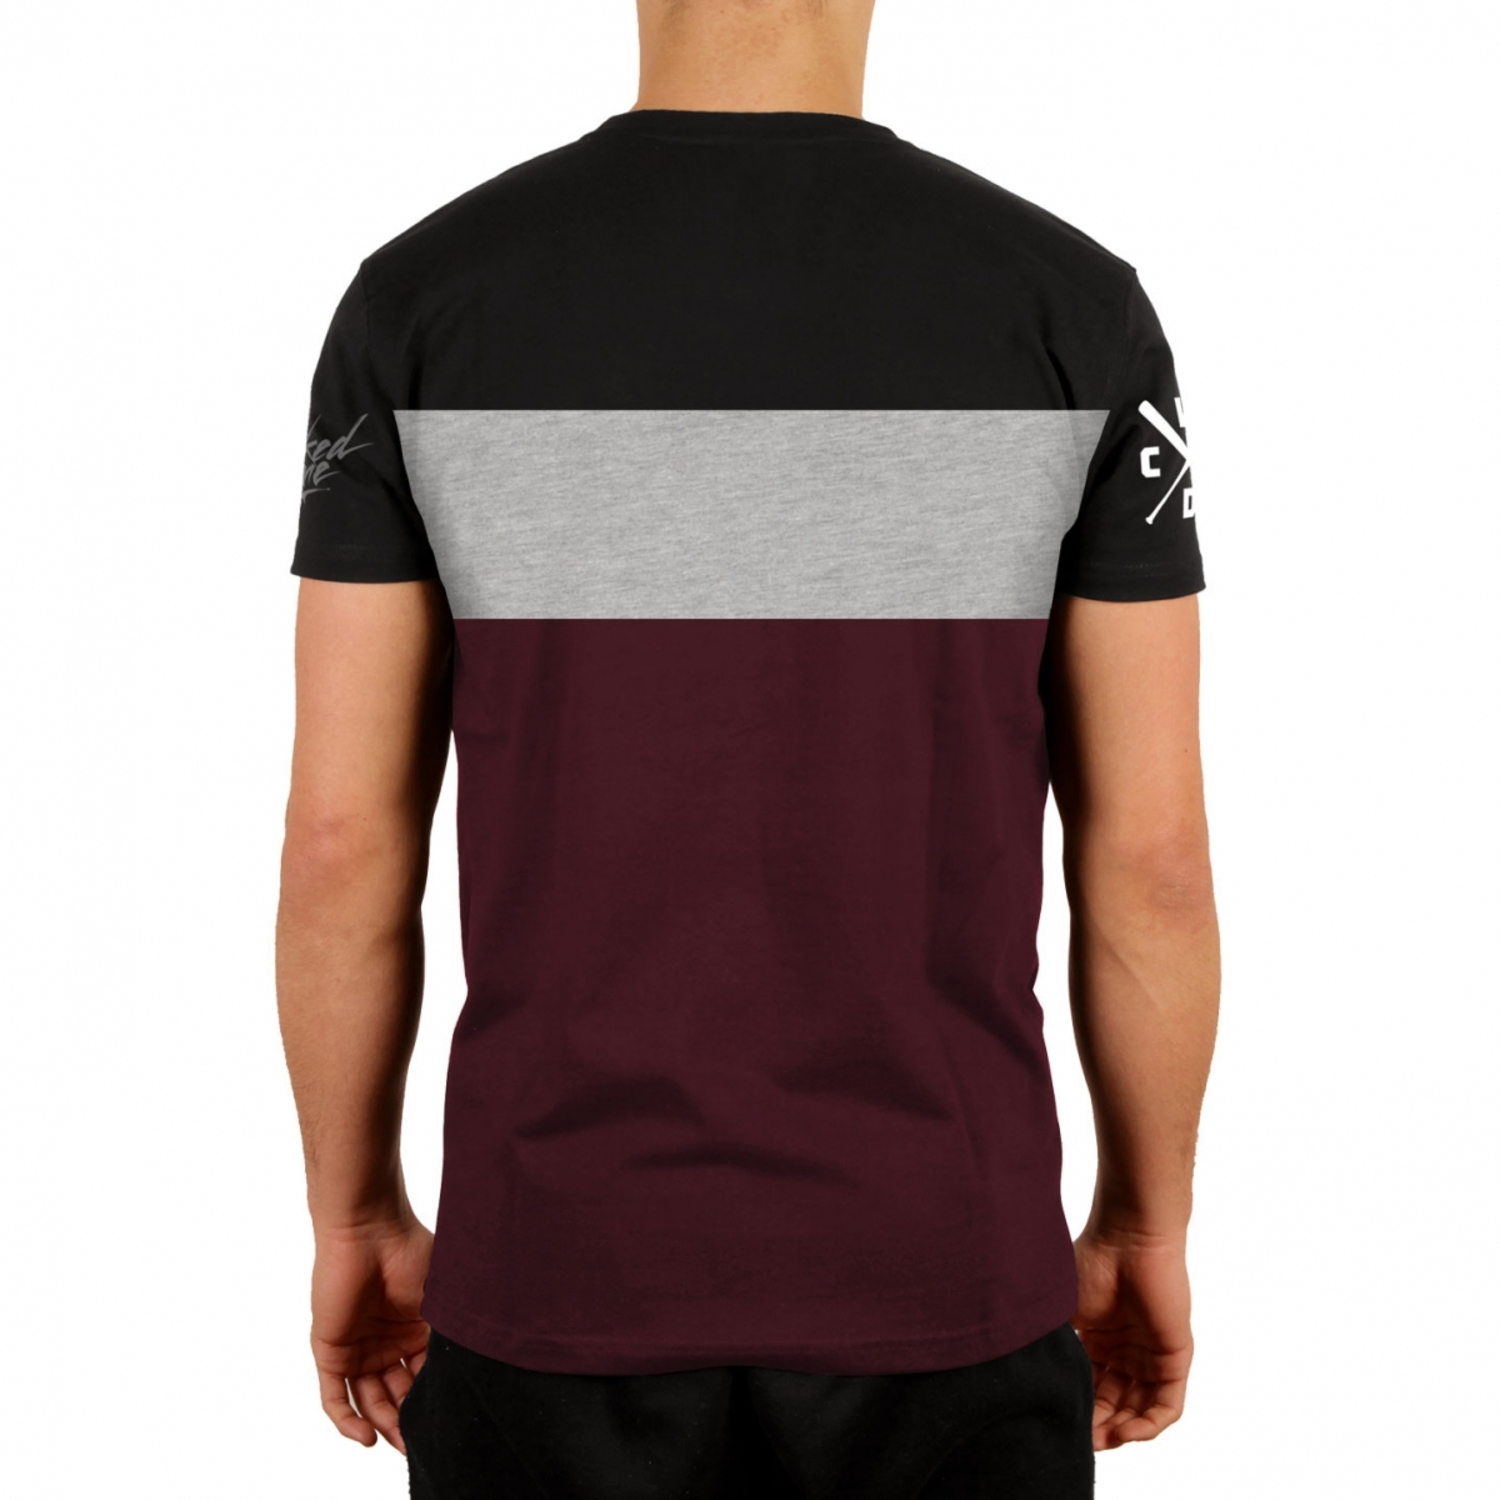 Футболка STUNT BLACK & BURGUNDY